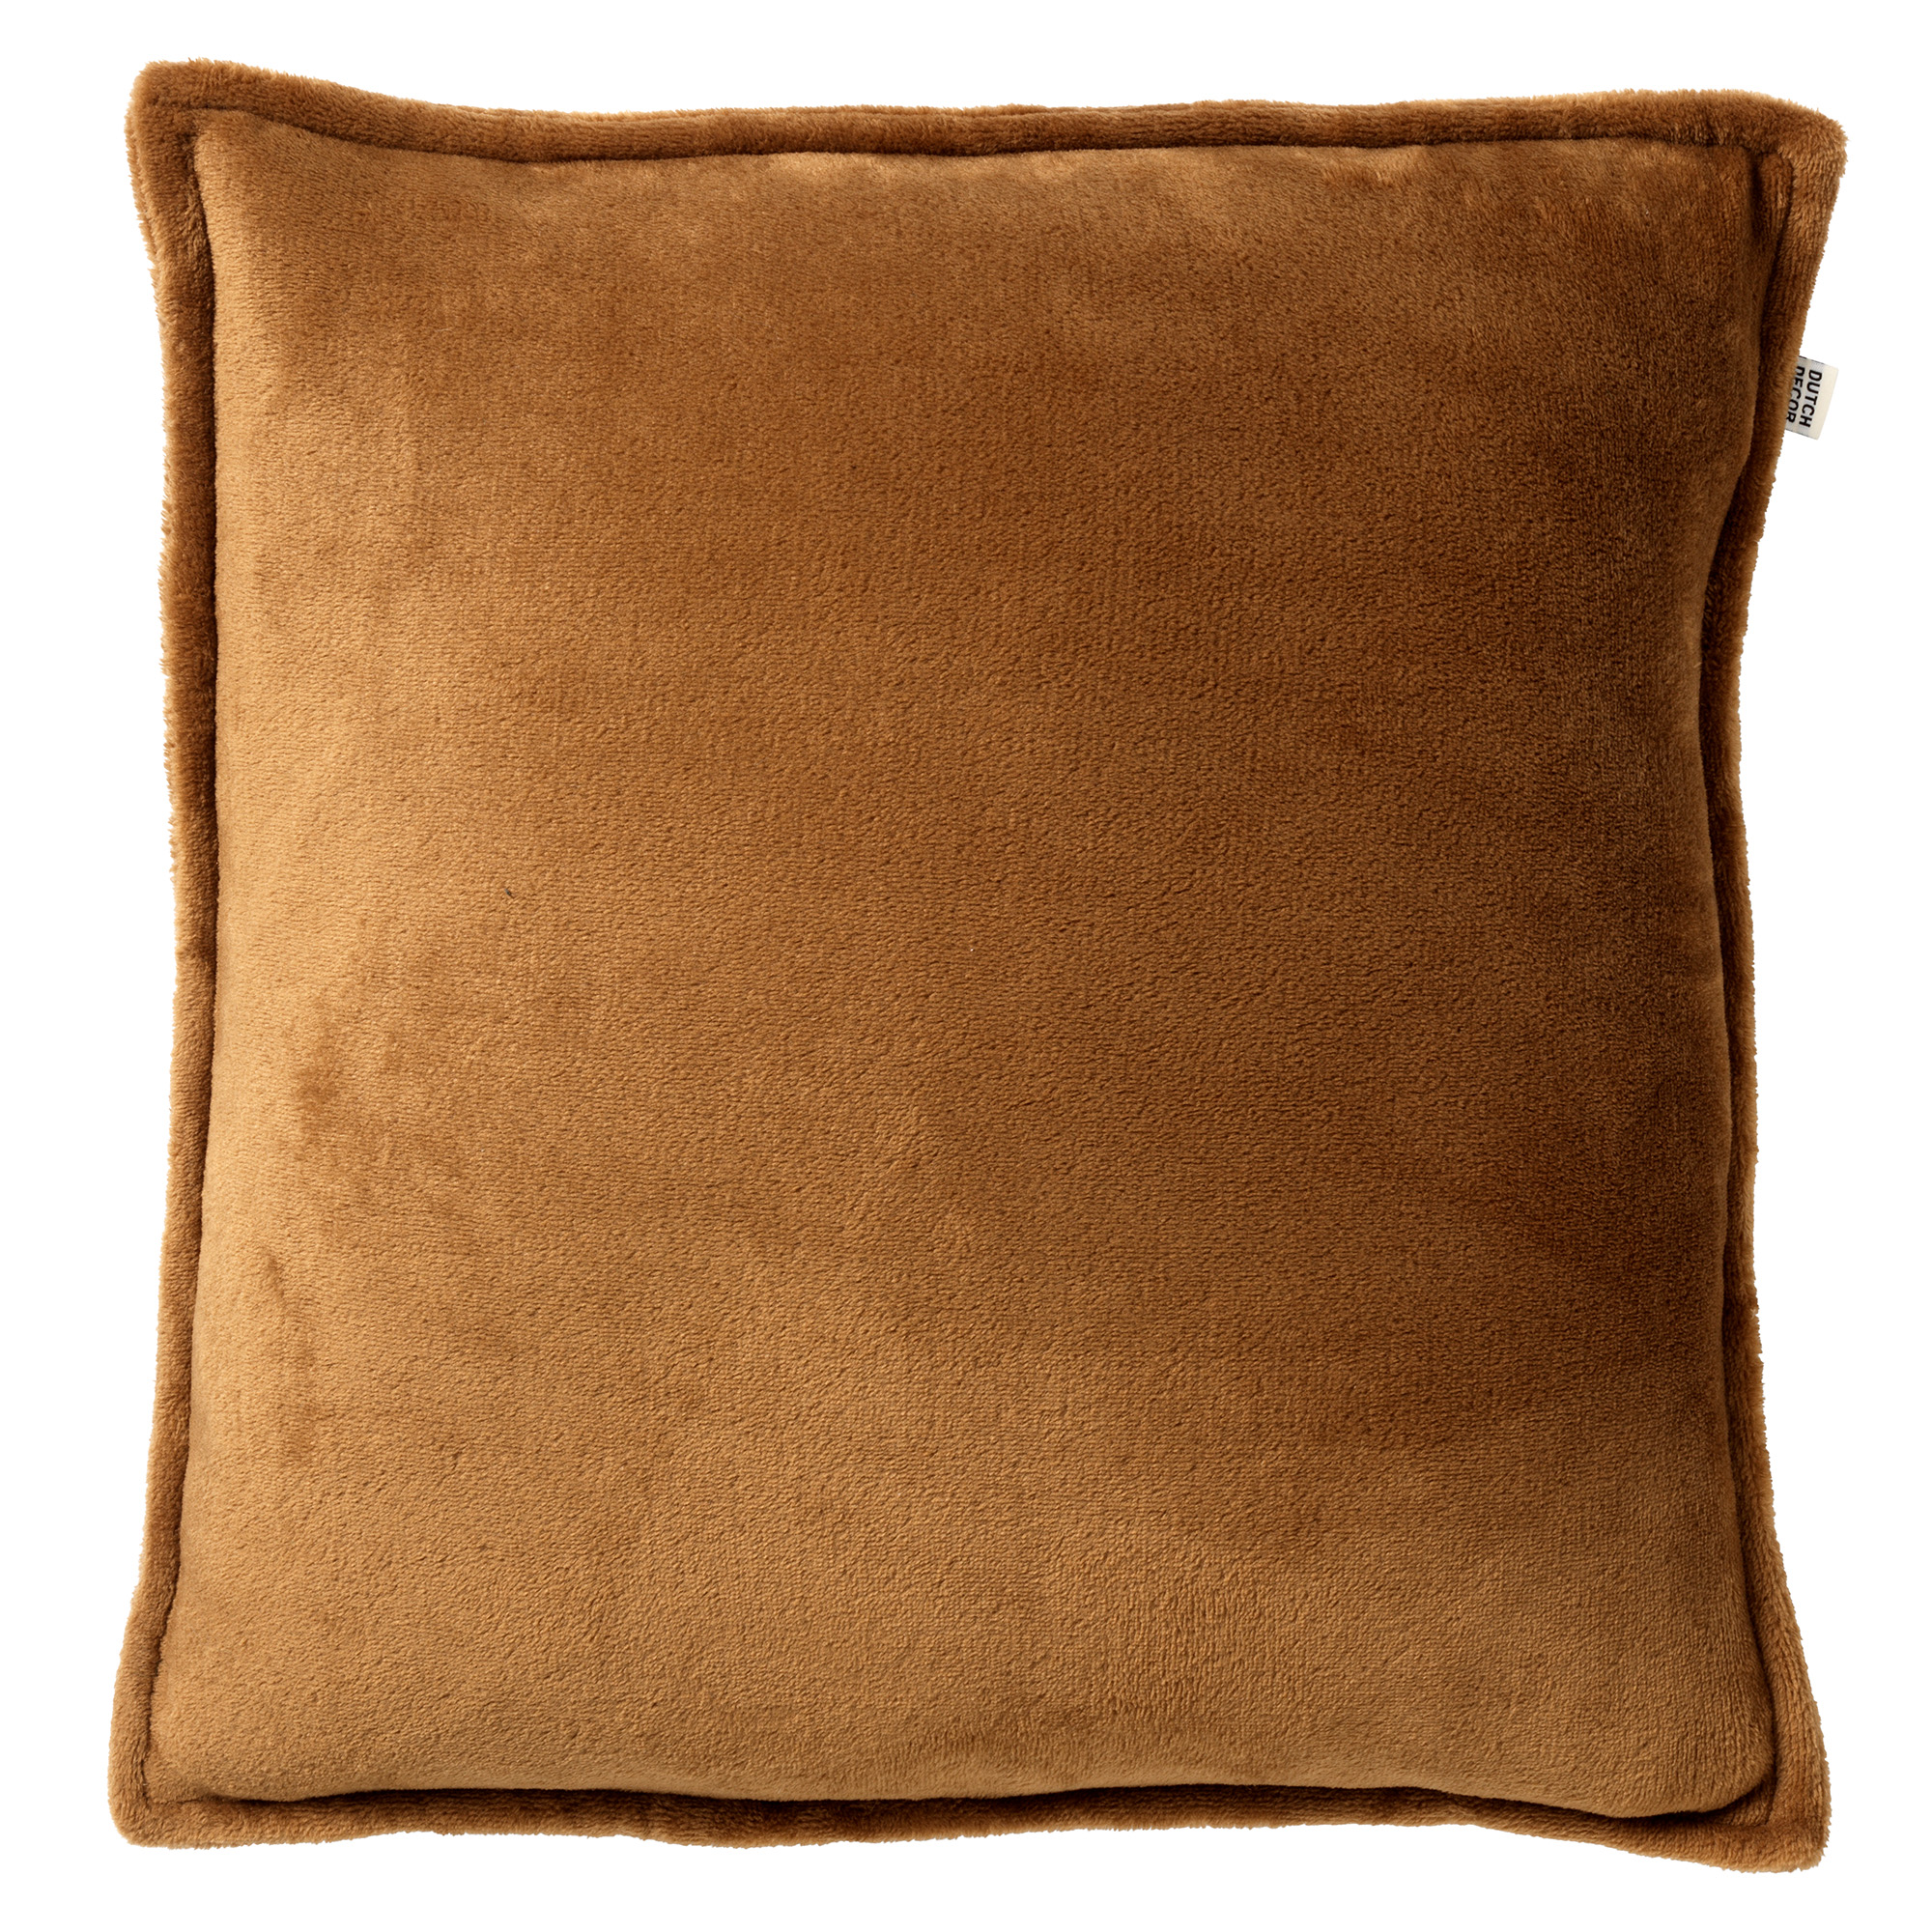 CILLY - Sierkussen van fleece Tobacco Brown 45x45 cm